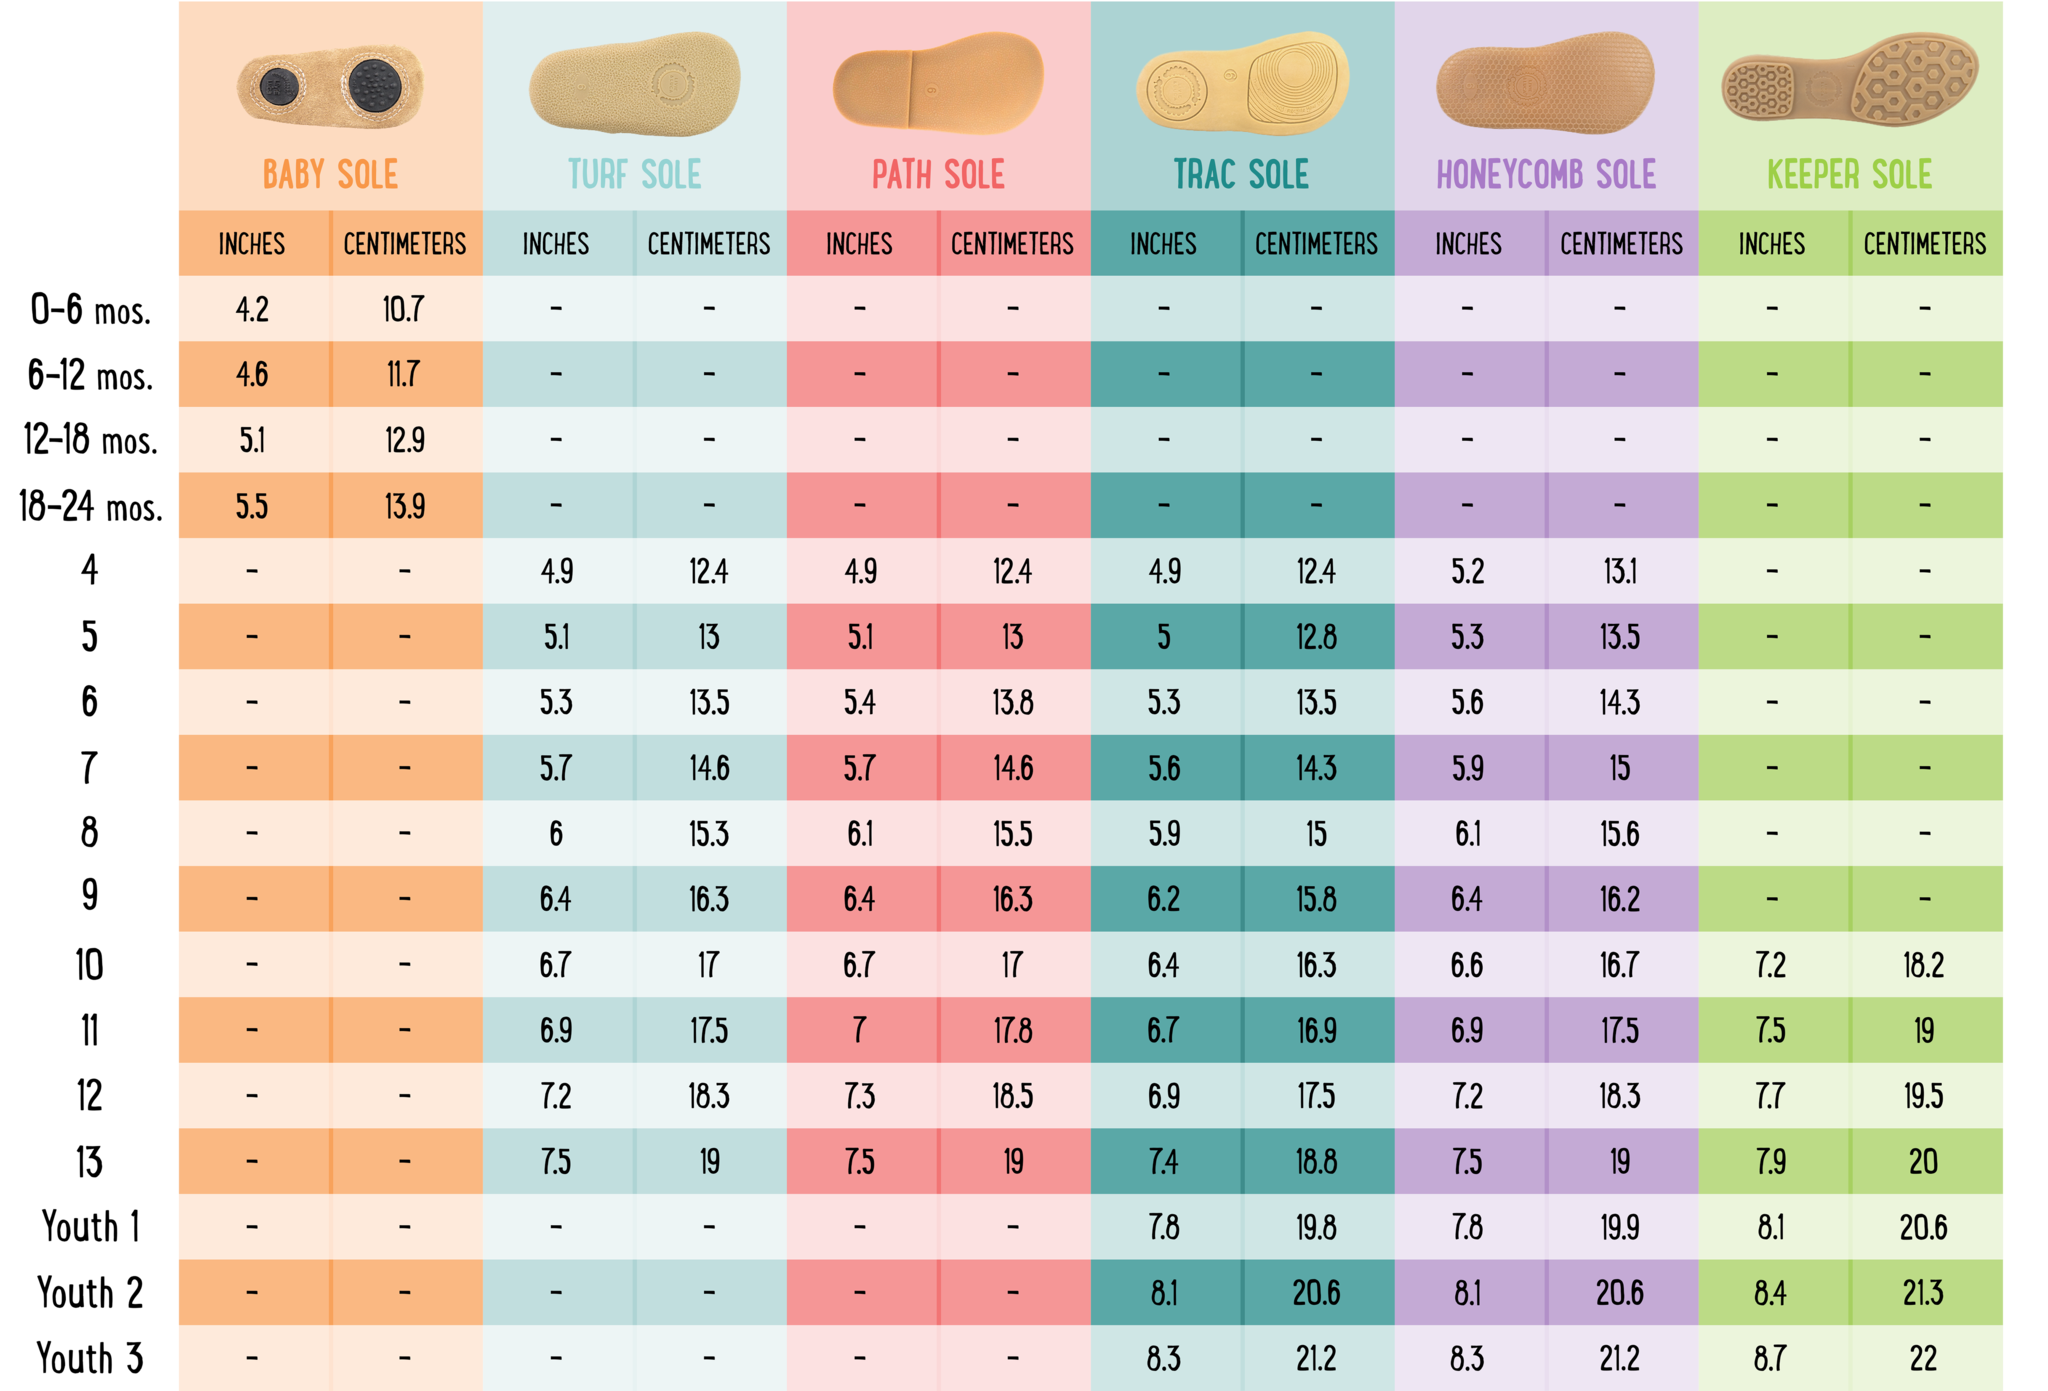 Kids' Shoe Size Chart Convert Inches & Centimeters To Sizes